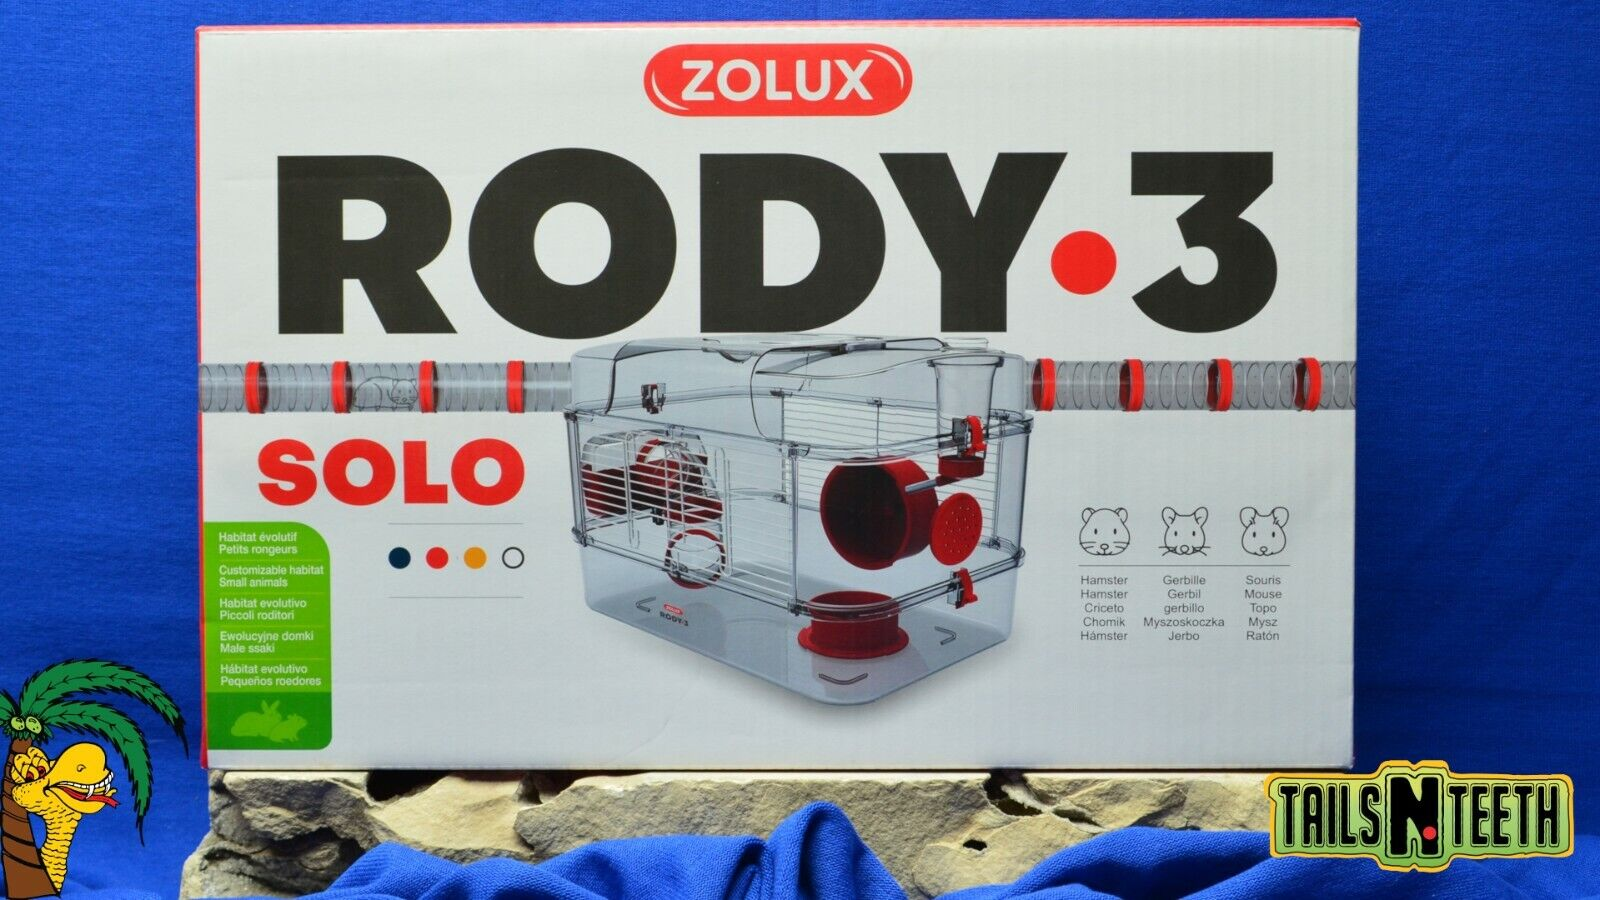 Zolux RODY-3 SOLO Cage For Hamsters Gerbils Mice - Red - InterConnecting Cages - CA$46.99